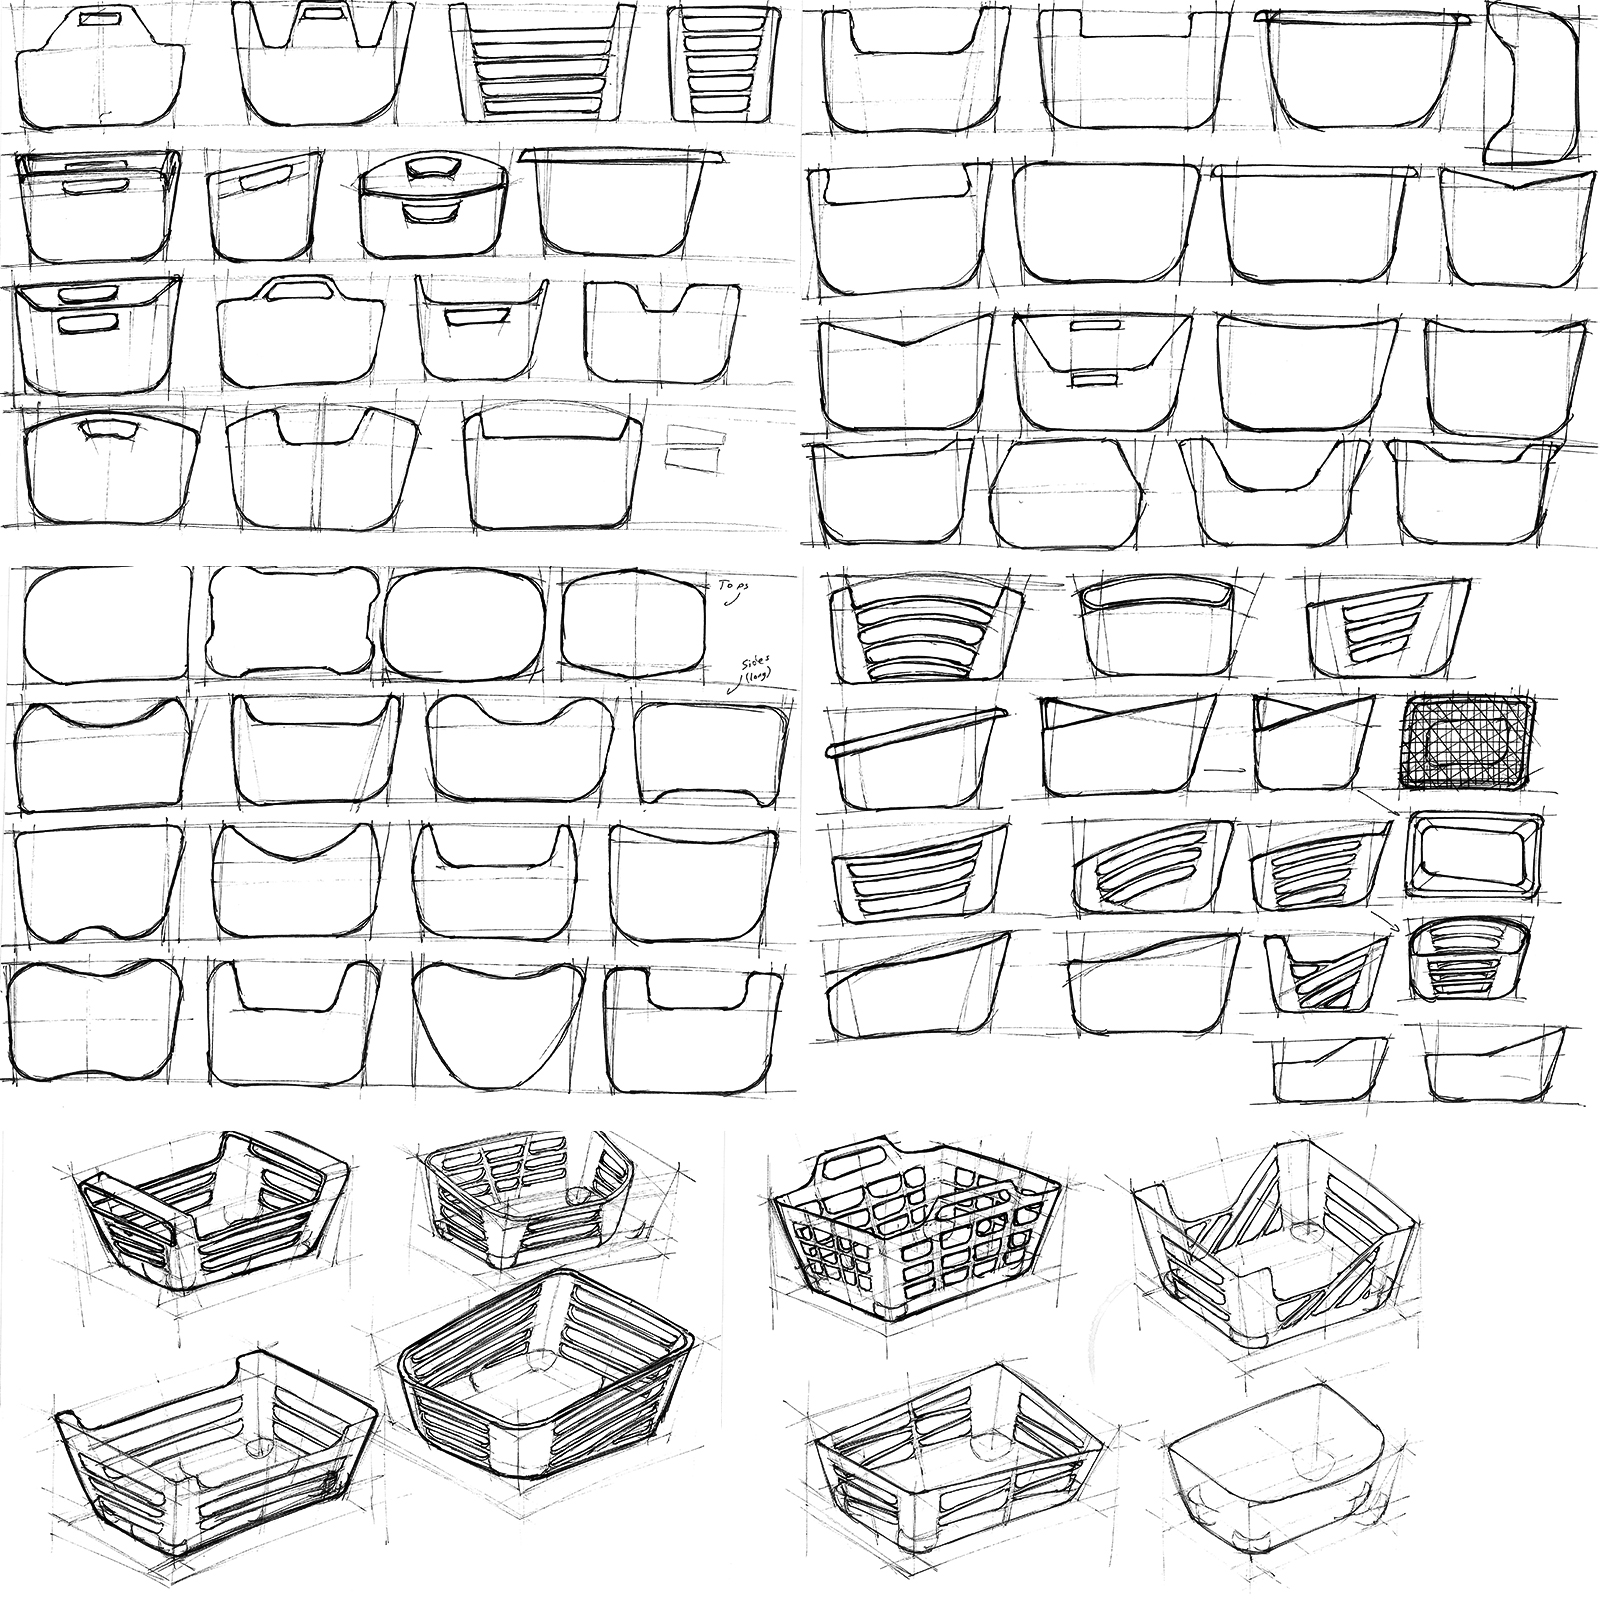 1600x1600 Opp Laundry Basket Amp Drawer Organizers By Jorge Gomez On Cad Crowd